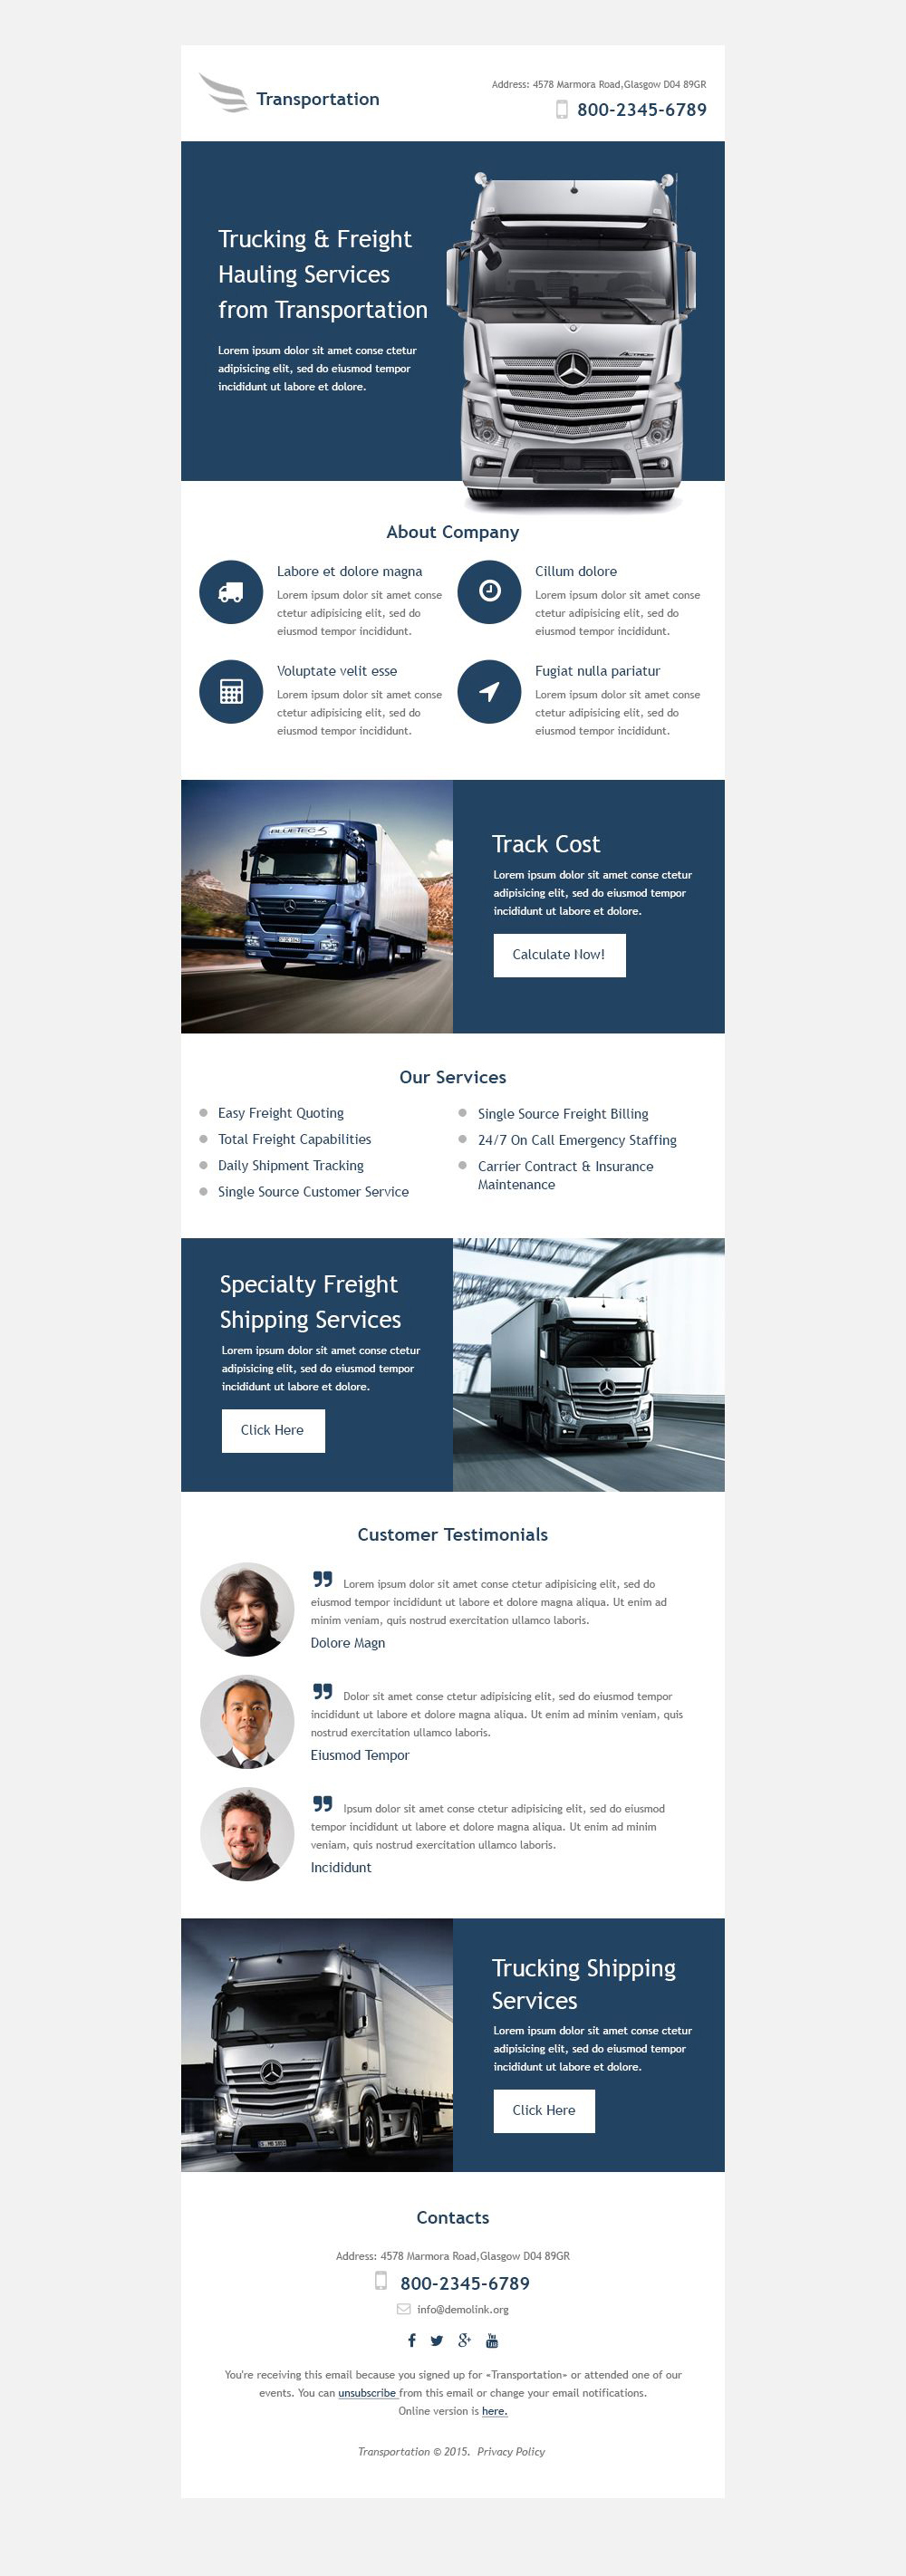 The Transportation Company Newsletter Template Design 53193, one of the best Newsletter templates of its kind (transportation, most popular), also known as transportation company Newsletter template, transport Newsletter template, fast Newsletter template, reliability Newsletter template, safety Newsletter template, express Newsletter template, exportation Newsletter template, trucking Newsletter template, work Newsletter template, team Newsletter template, profile Newsletter template, support Newsletter template, customer Newsletter template, clients solutions Newsletter template, cars Newsletter template, cargo Newsletter template, services Newsletter template, shipment Newsletter template, rates Newsletter template, prices Newsletter template, offer Newsletter template, standards Newsletter template, vehicle Newsletter template, destination Newsletter template, trucking Newsletter template, sea Newsletter template, air Newsletter template, help and related with transportation company, transport, fast, reliability, safety, express, exportation, trucking, work, team, profile, support, customer, clients solutions, cars, cargo, services, shipment, rates, prices, offer, standards, vehicle, destination, trucking, sea, air, help, etc.